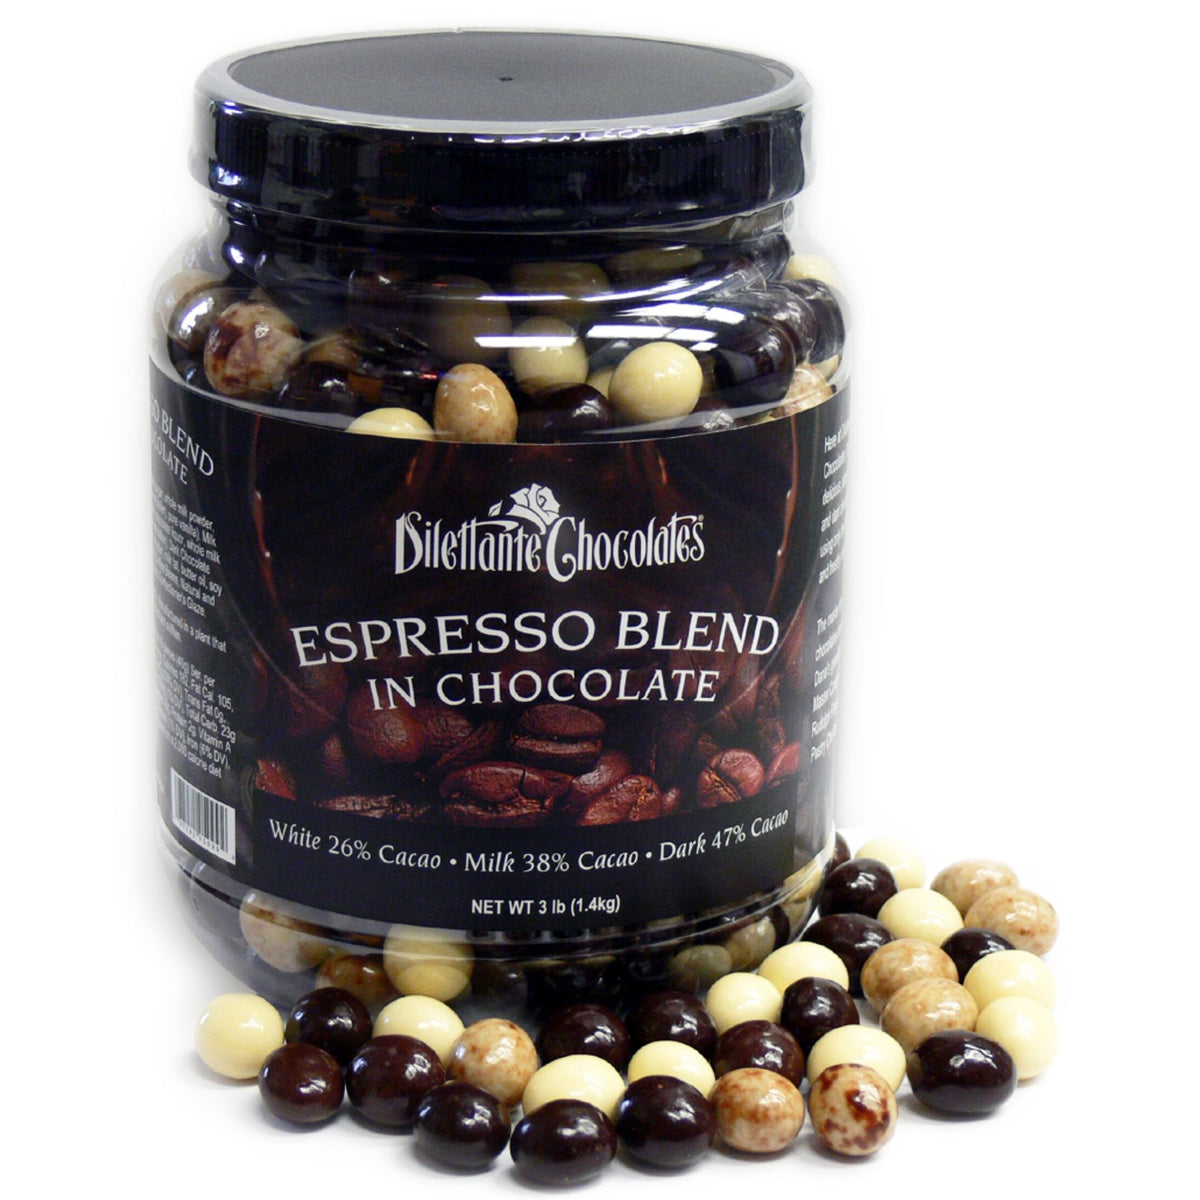 Dilettante Chocolates Bulk Chocolate-Covered Espresso Beans in a 3-Pound Jar Featuring Espresso Beans in Milk, White, and Dark Chocolate